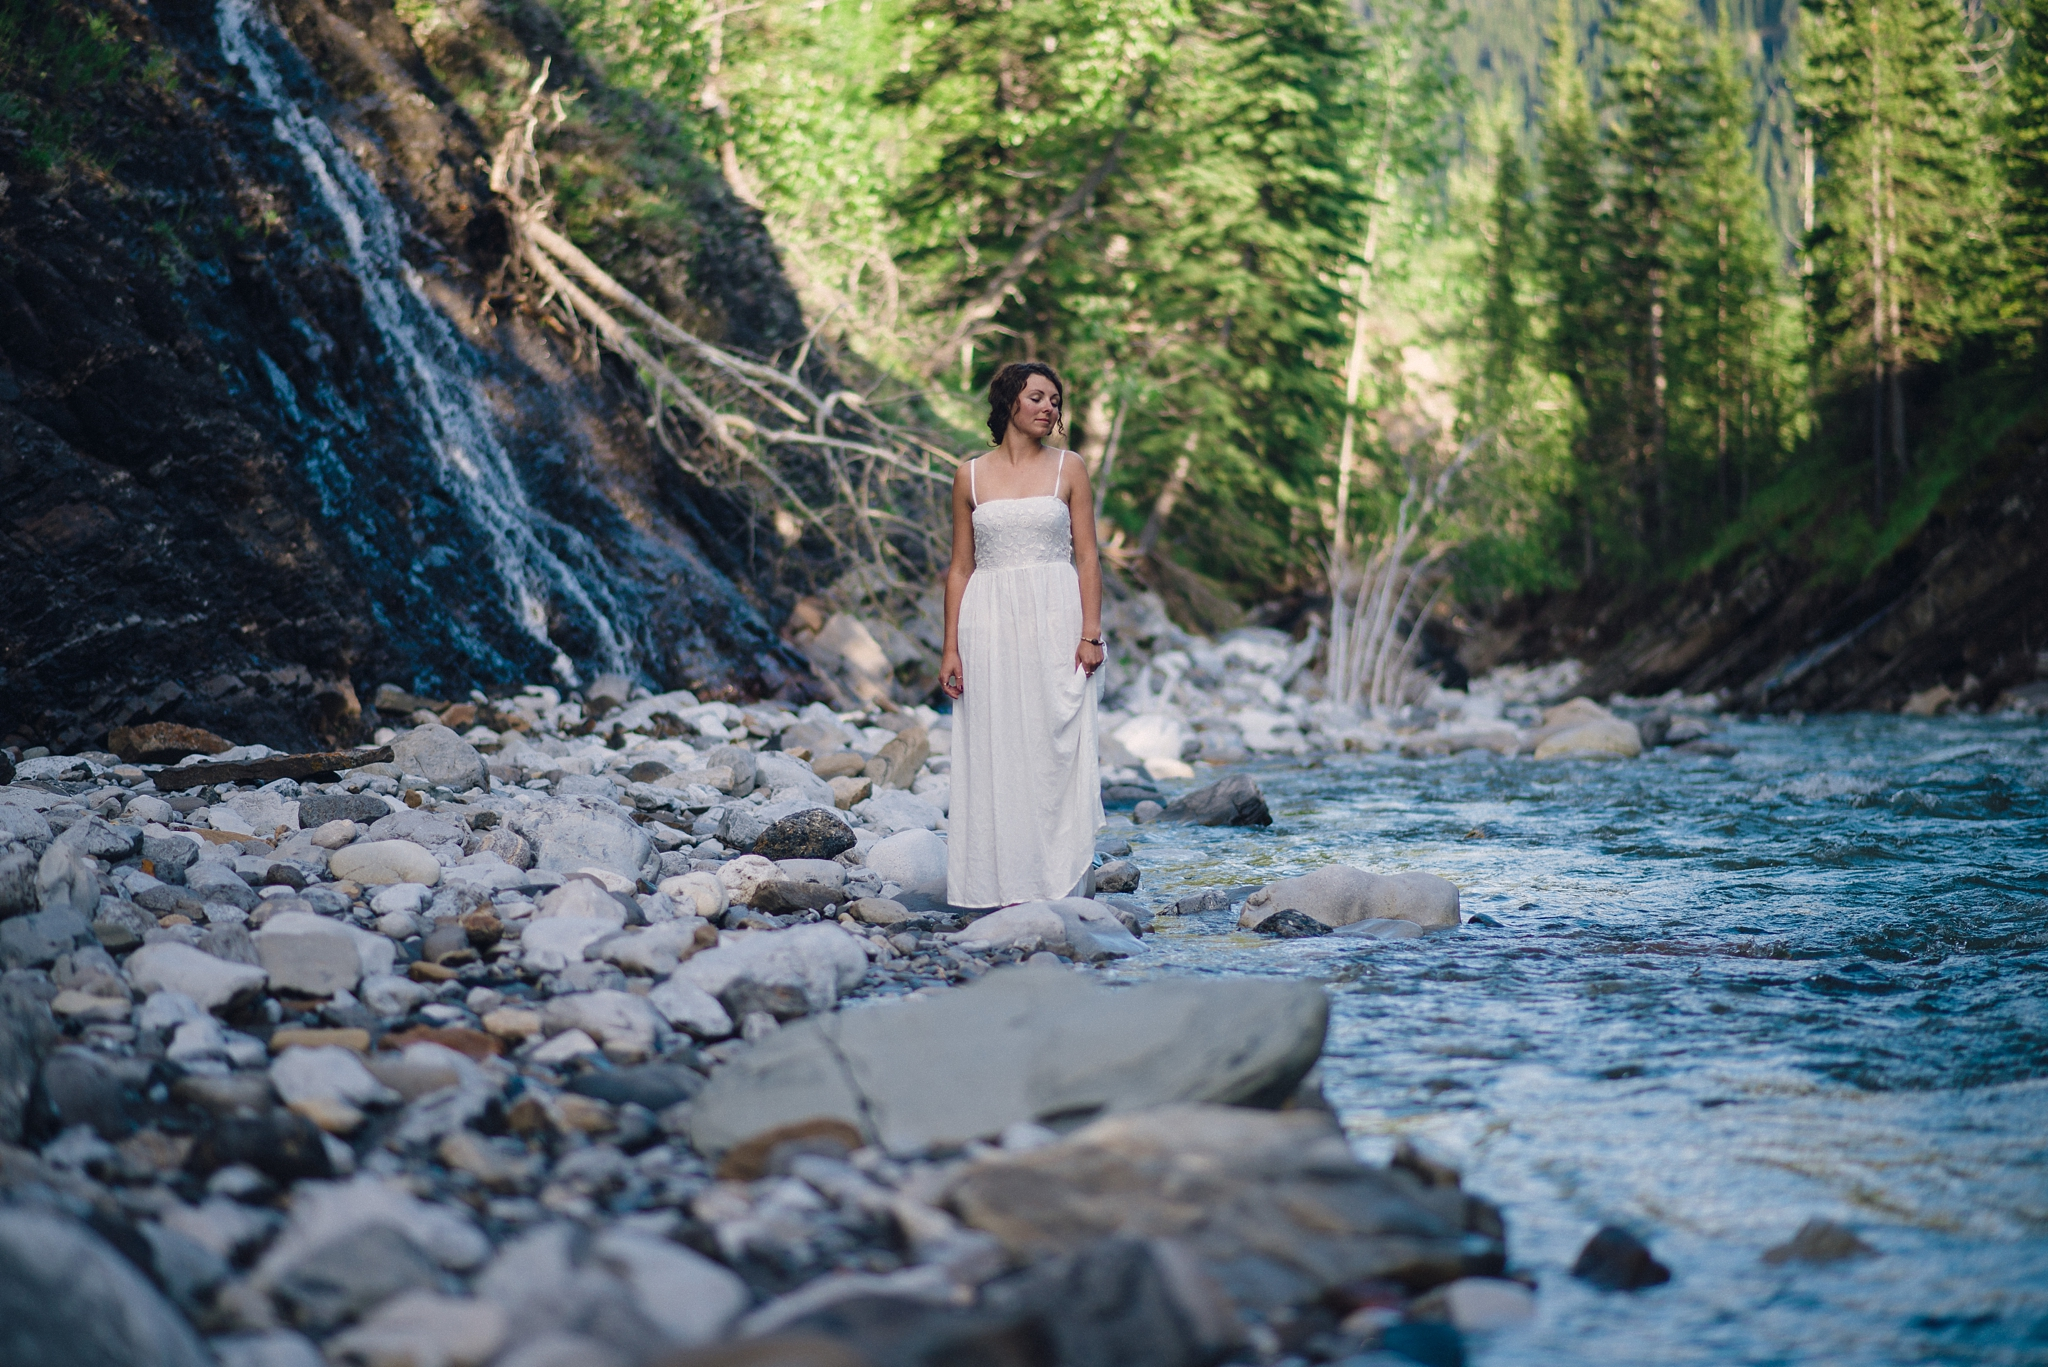 kaihla_tonai_intimate_wedding_elopement_photographer_0004